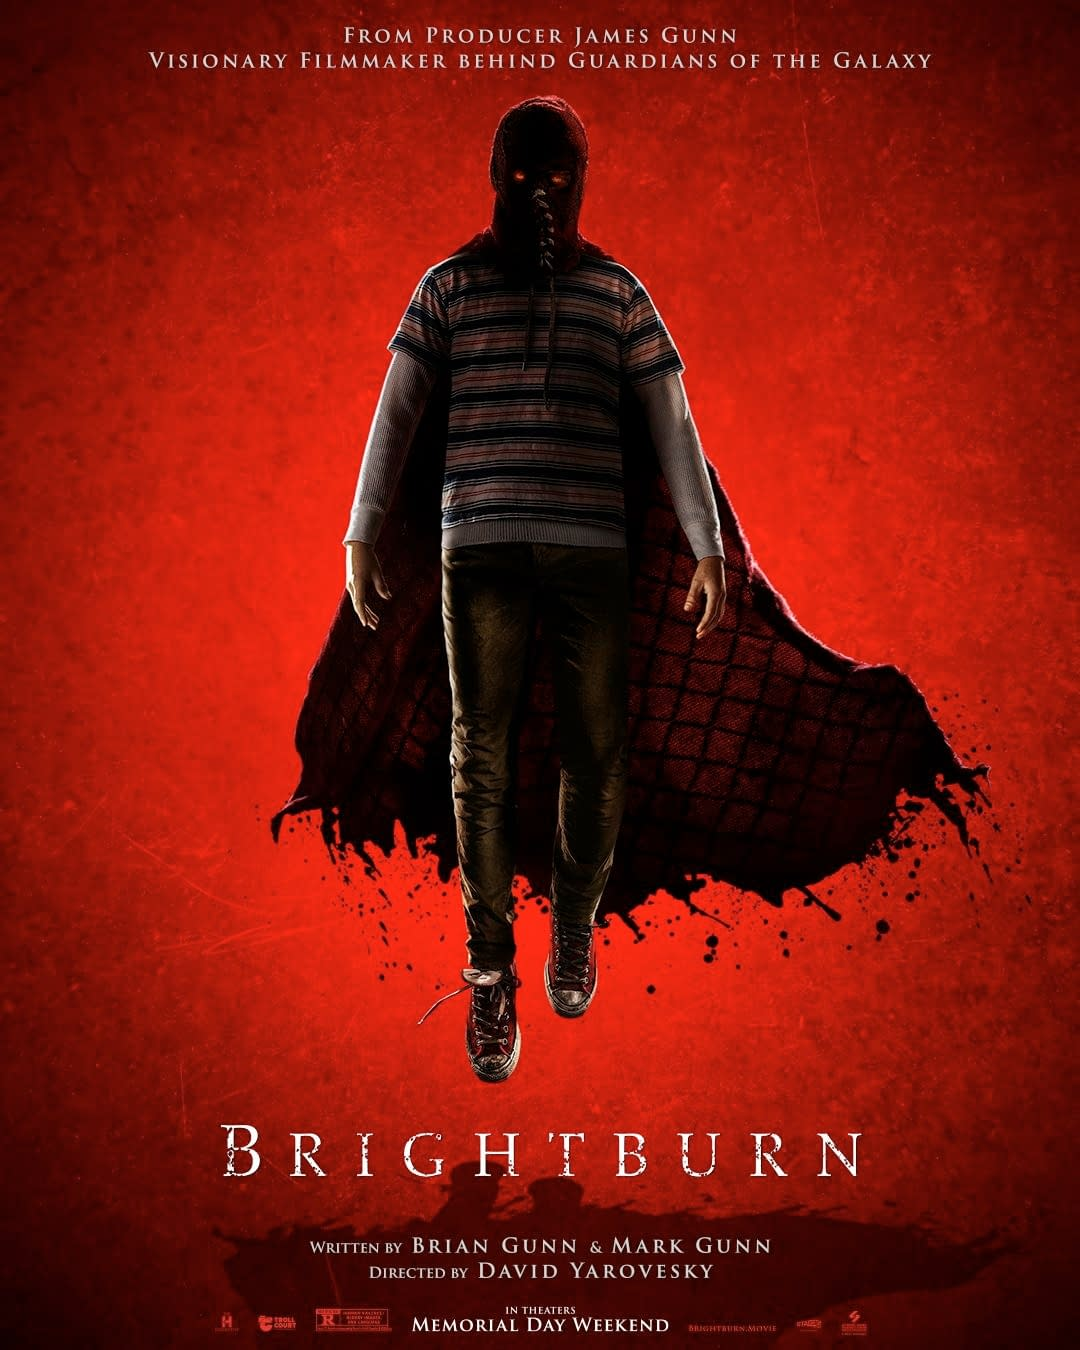 New Extended Trailer for Brightburn Teases New Footage Plus a New Poster